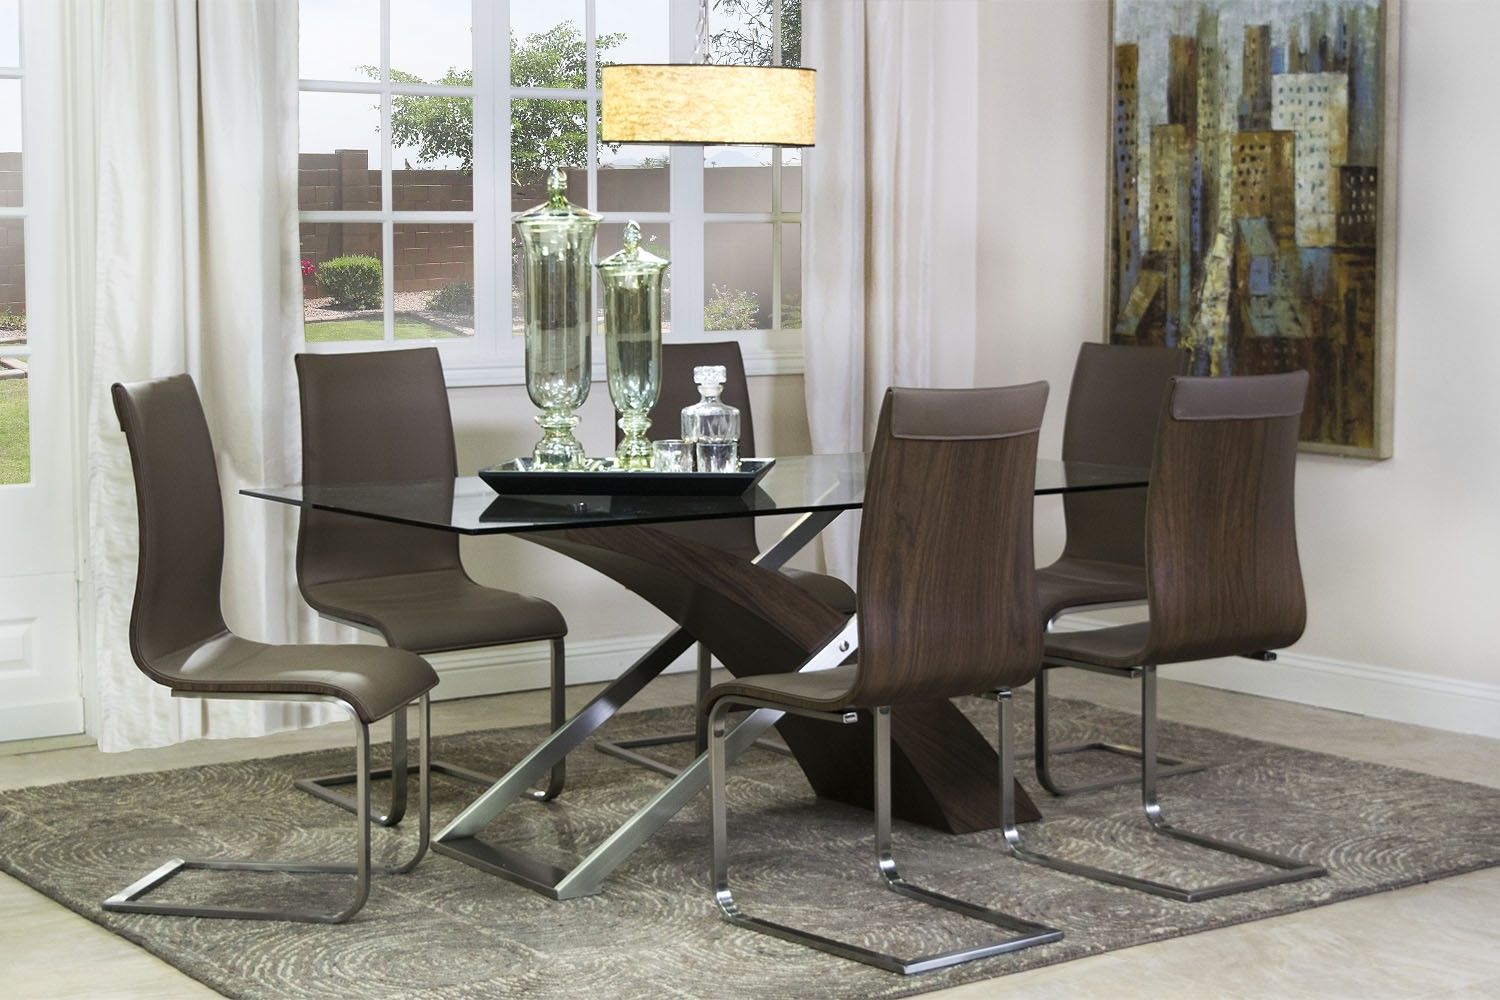 Mor Furniture For Less The Bentwood Glass Dining Table Mor Furniture For Less Eric 39 S Home